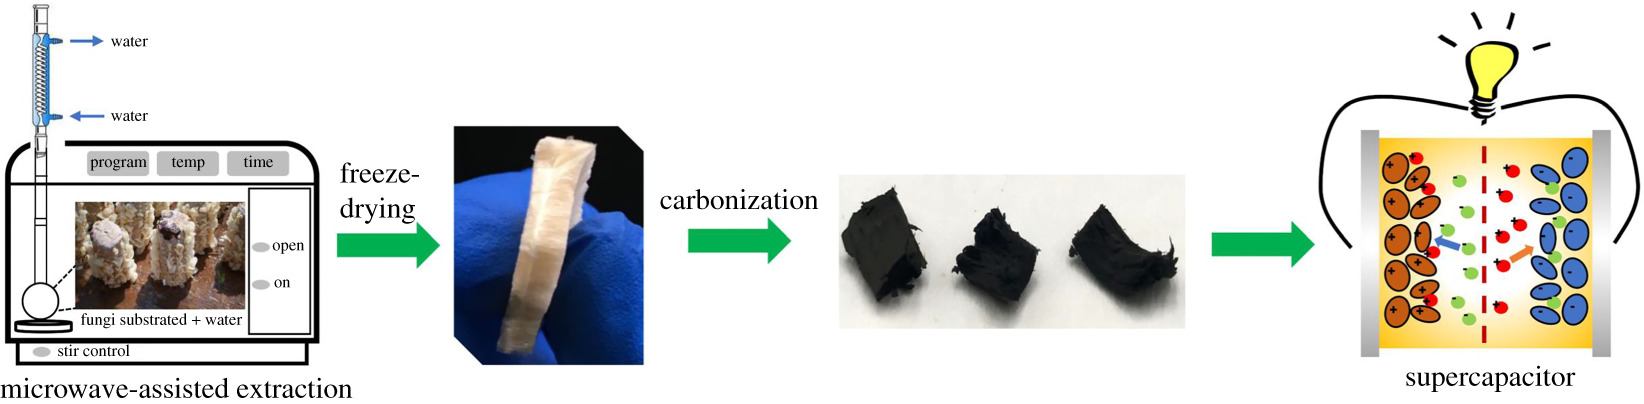 Novel biomass-derived smoke-like carbon as a supercapacitor